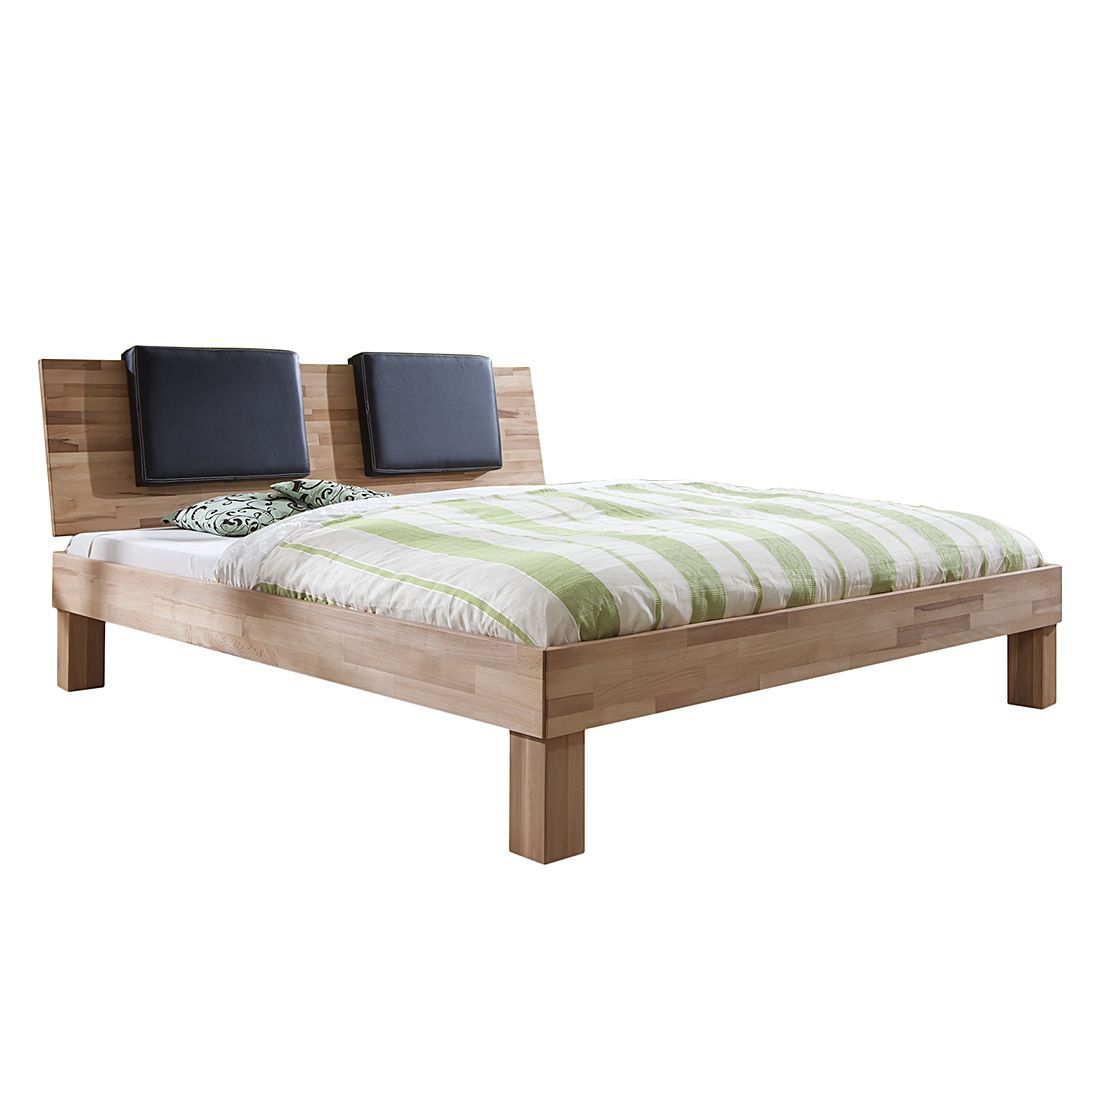 Schlafzimmer Komplett Bett 160x200 Massivholzbett Max Optional Bettkaesten Betten Pinterest